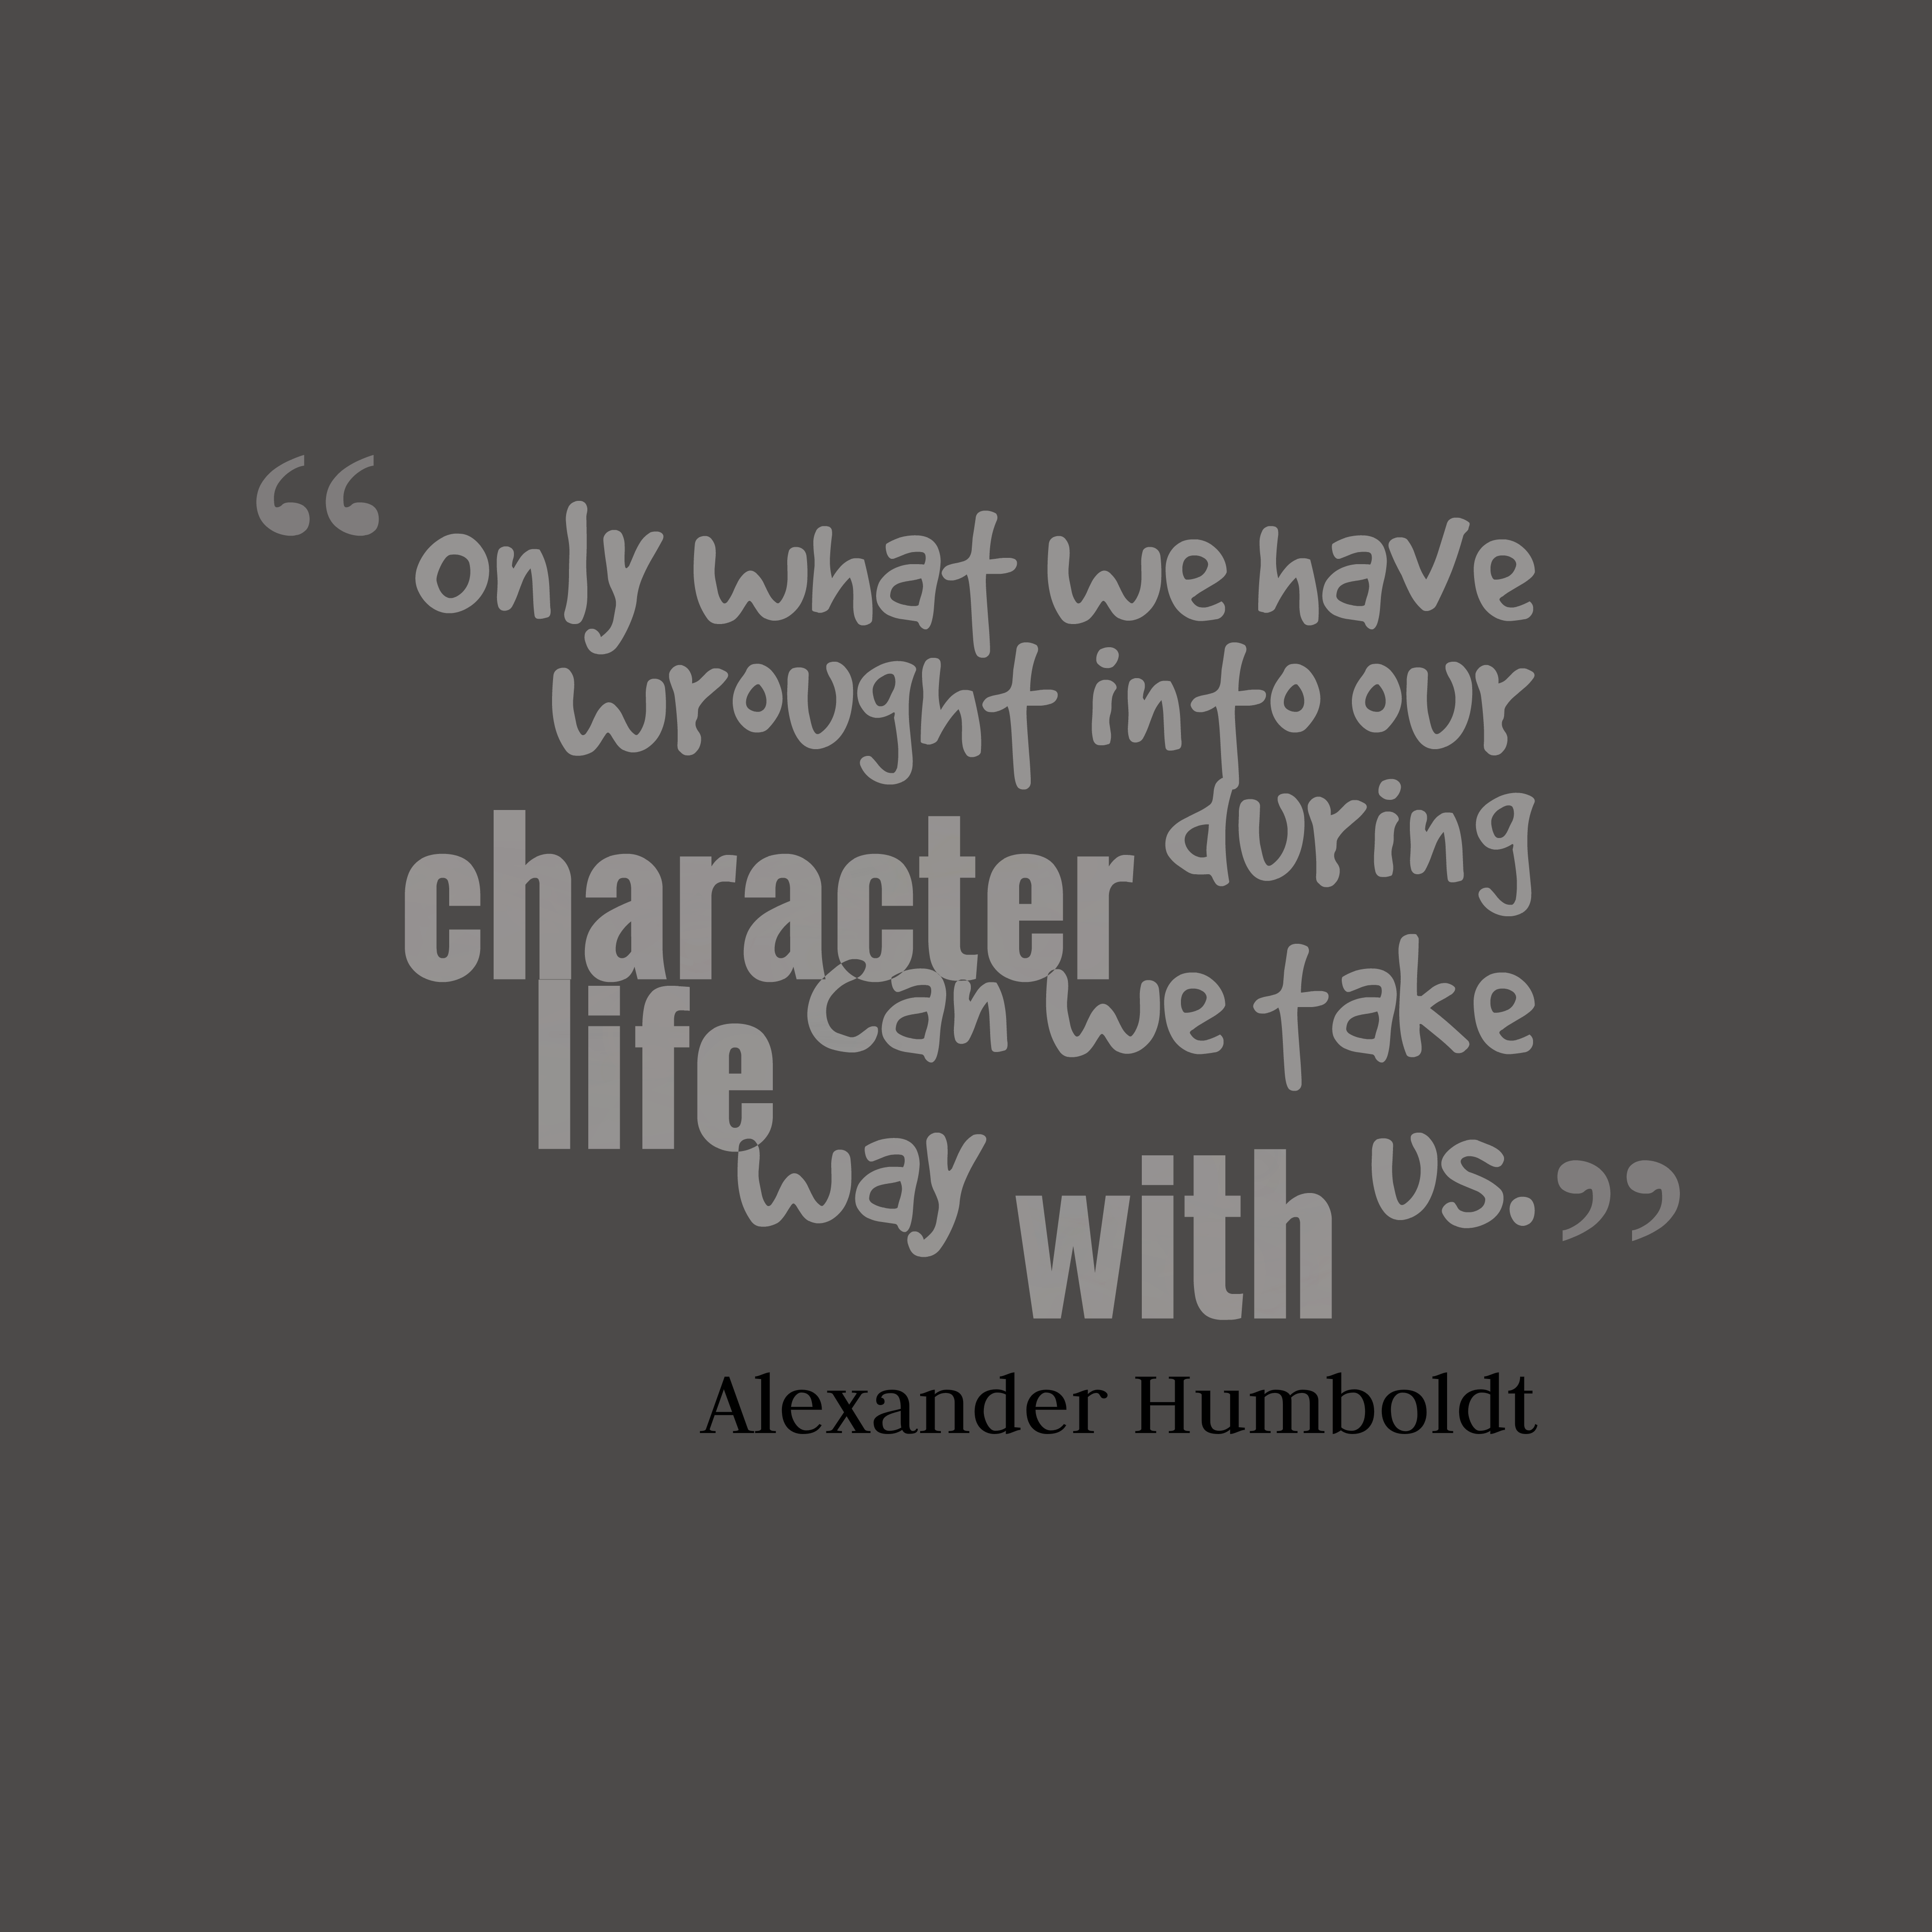 Quotes image of Only what we have wrought into our character during life can we take way with us.